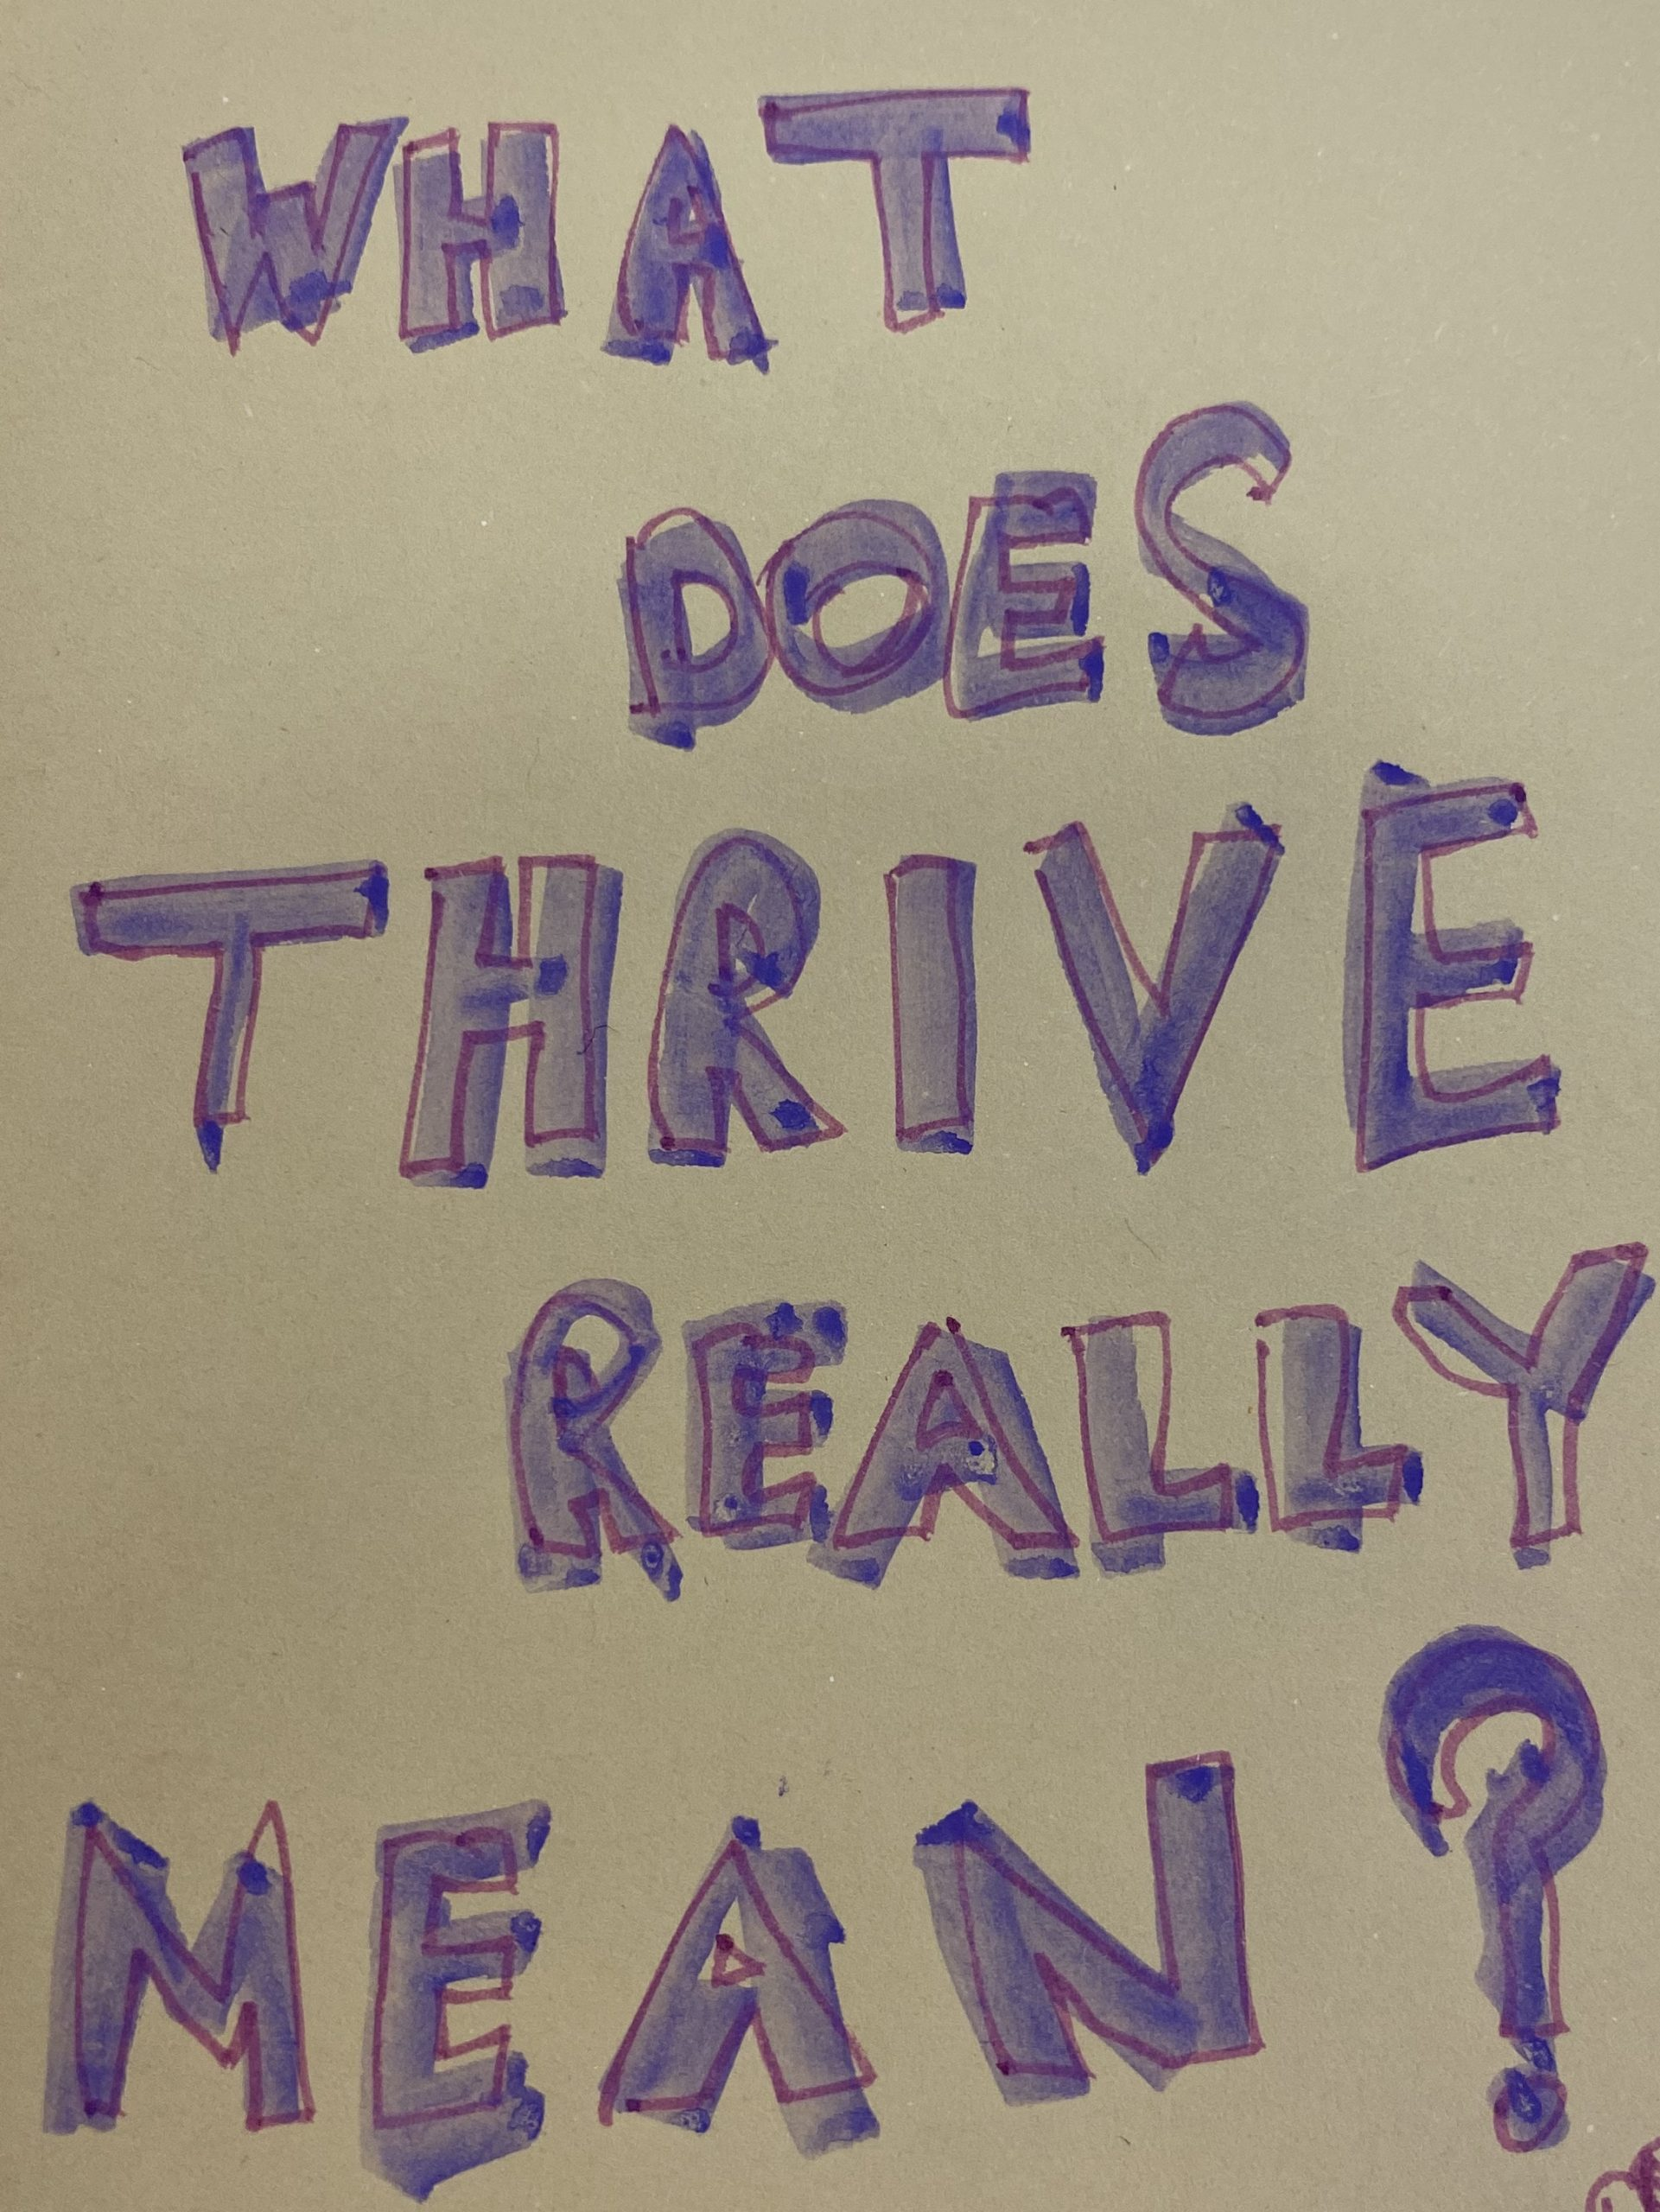 What does thrive really mean?